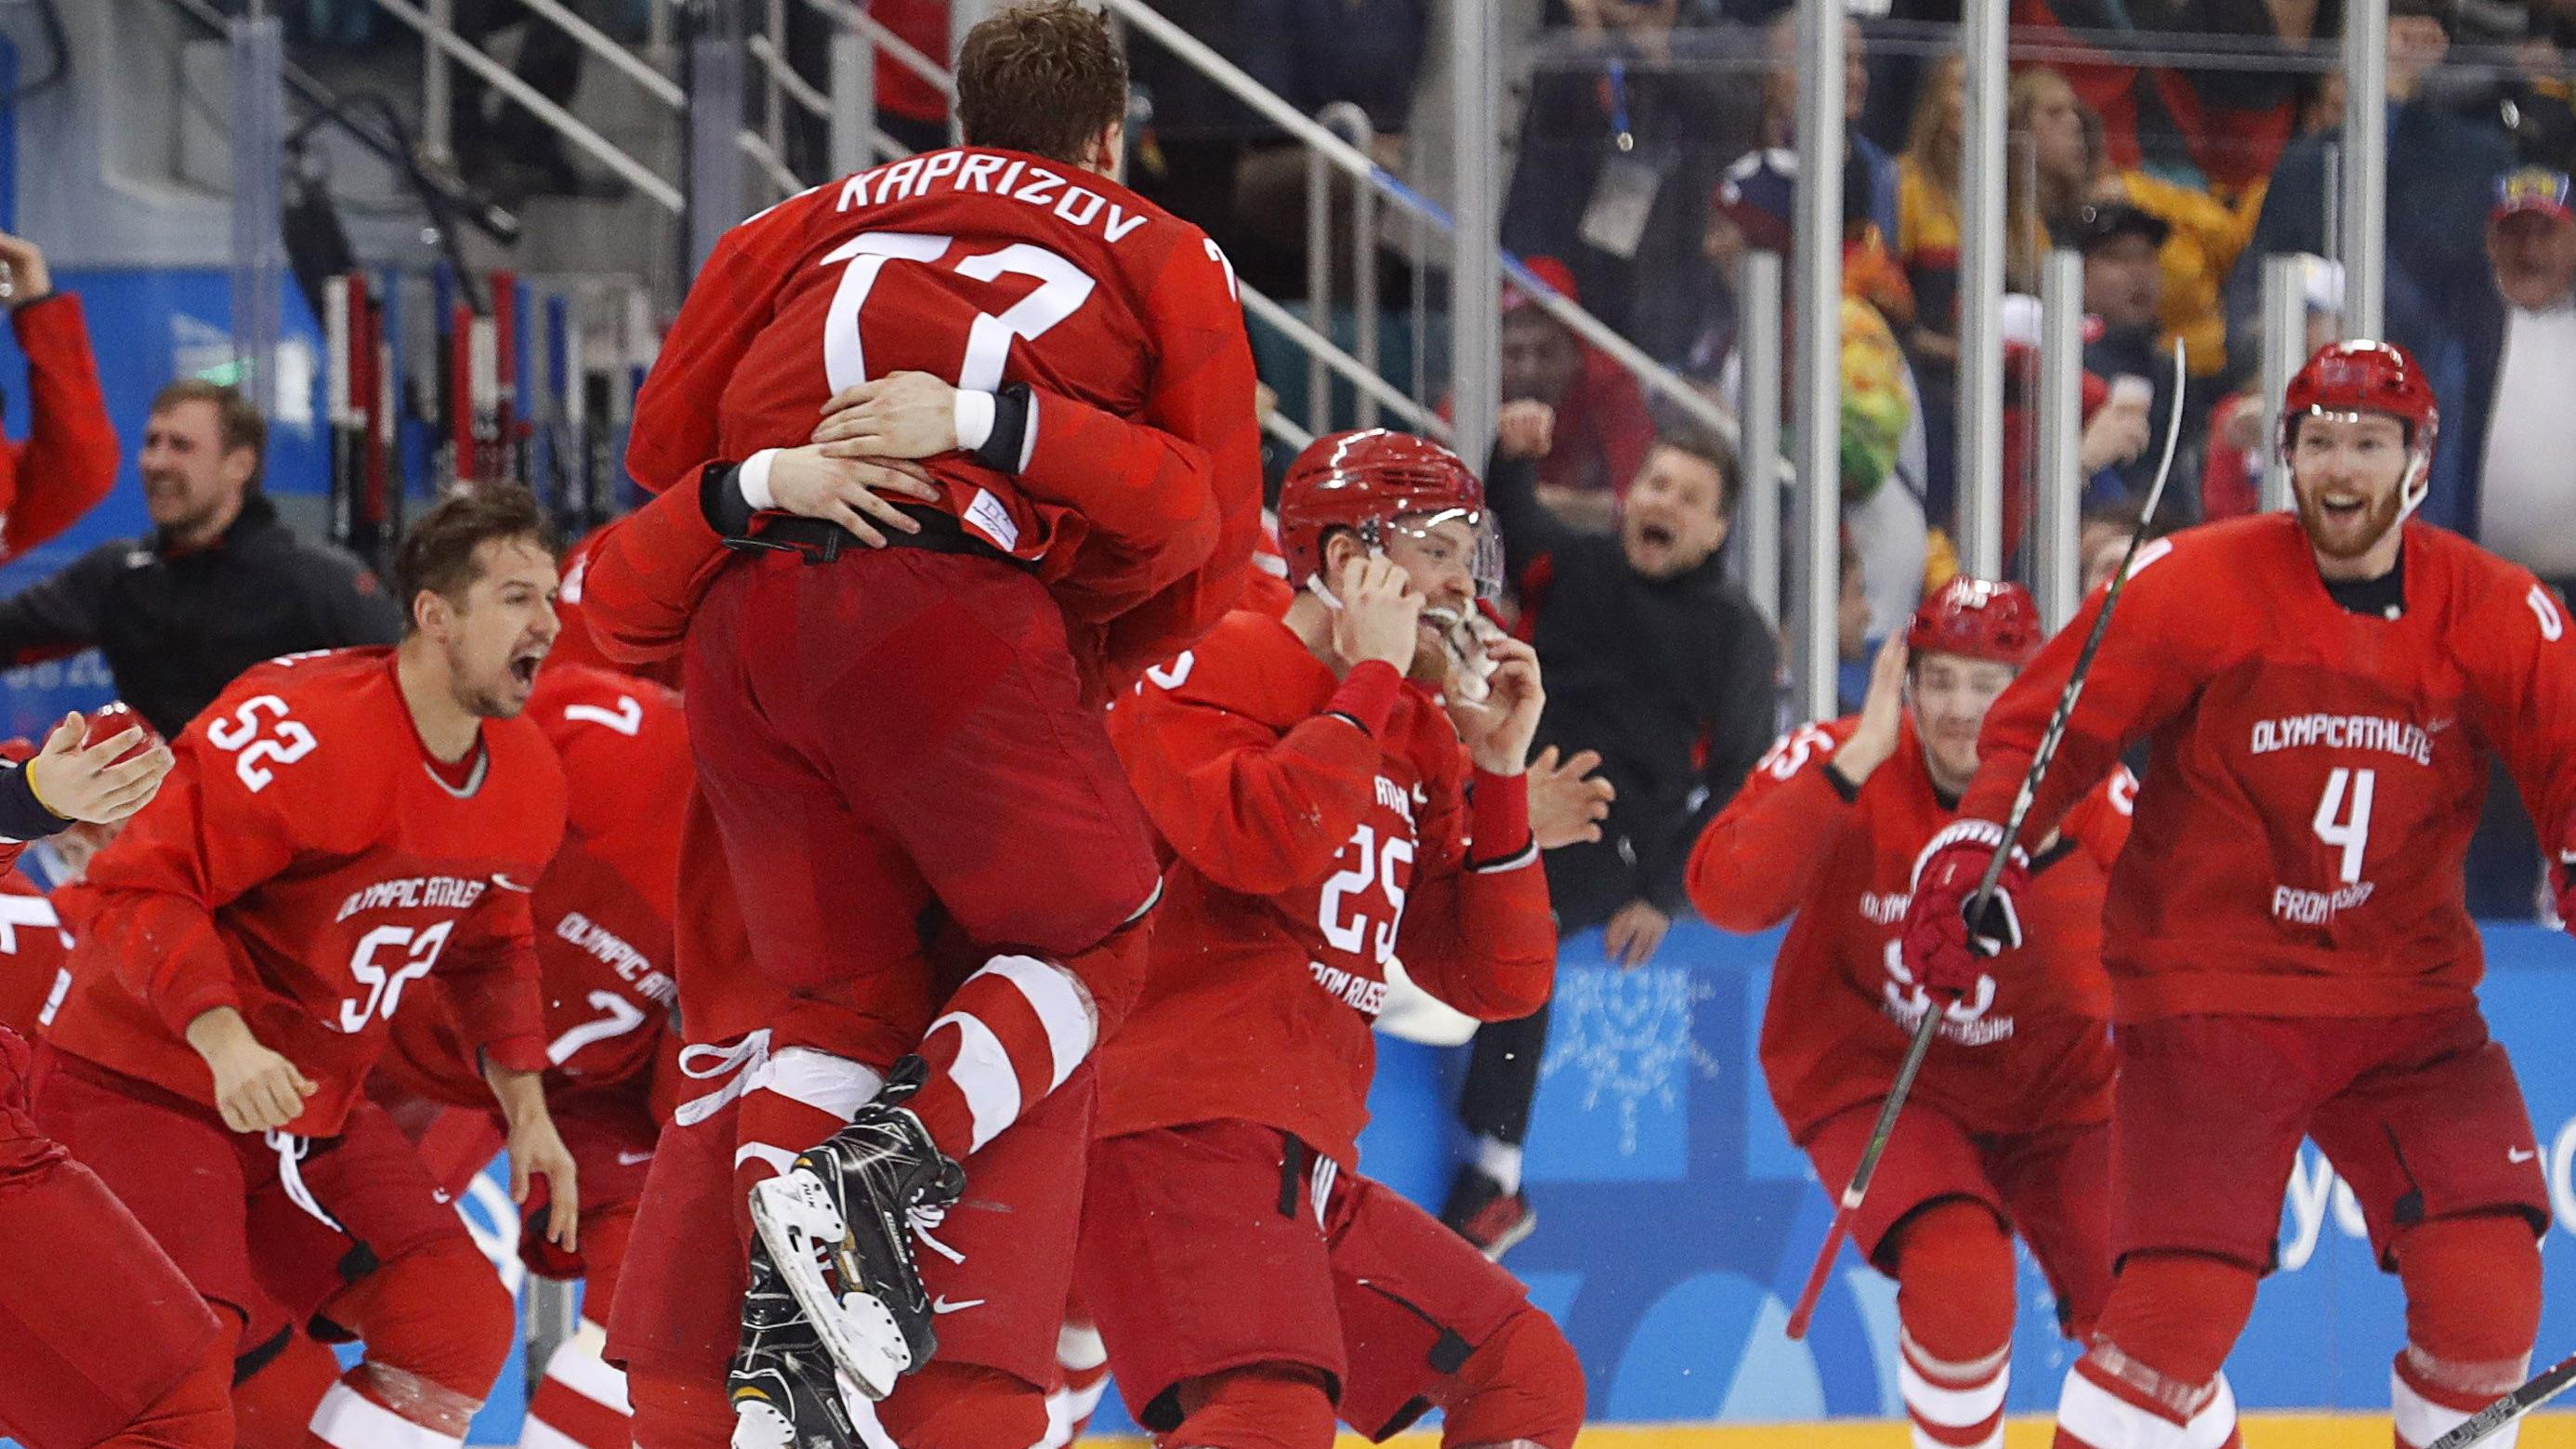 Ice Hockey - Pyeongchang 2018 Winter Olympics - Men's Final Match - Russia - Germany - Gangneung Hockey Centre, Gangneung, South Korea - February 25, 2018 - Olympic Athlete from Russia Kirill Kaprizov reacts with teammates after scoring a goal. REUTE